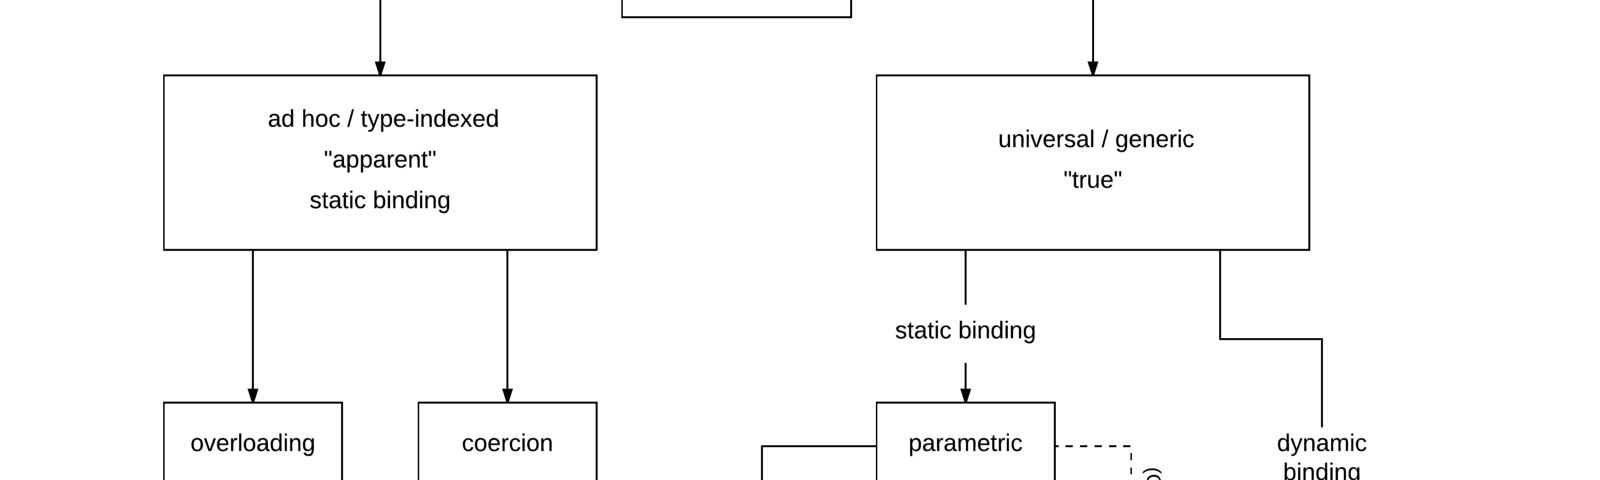 Types of polymorphism